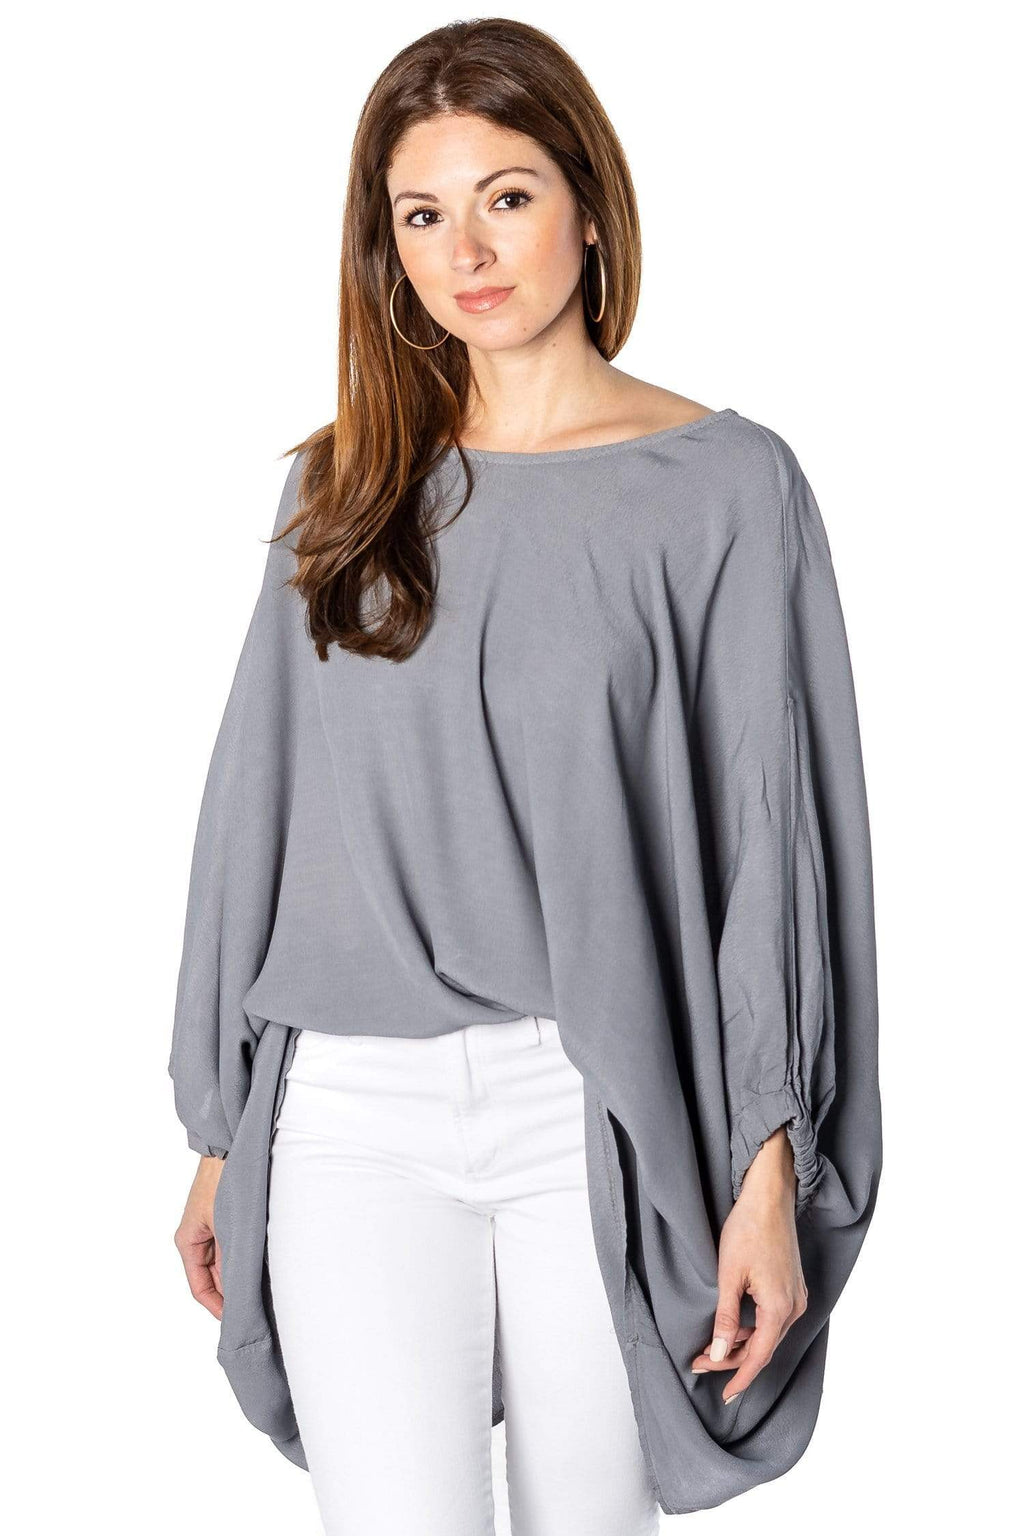 shop-sofia Carrie Military Lose Top Sofia Collections Italian Silk Linen Satin